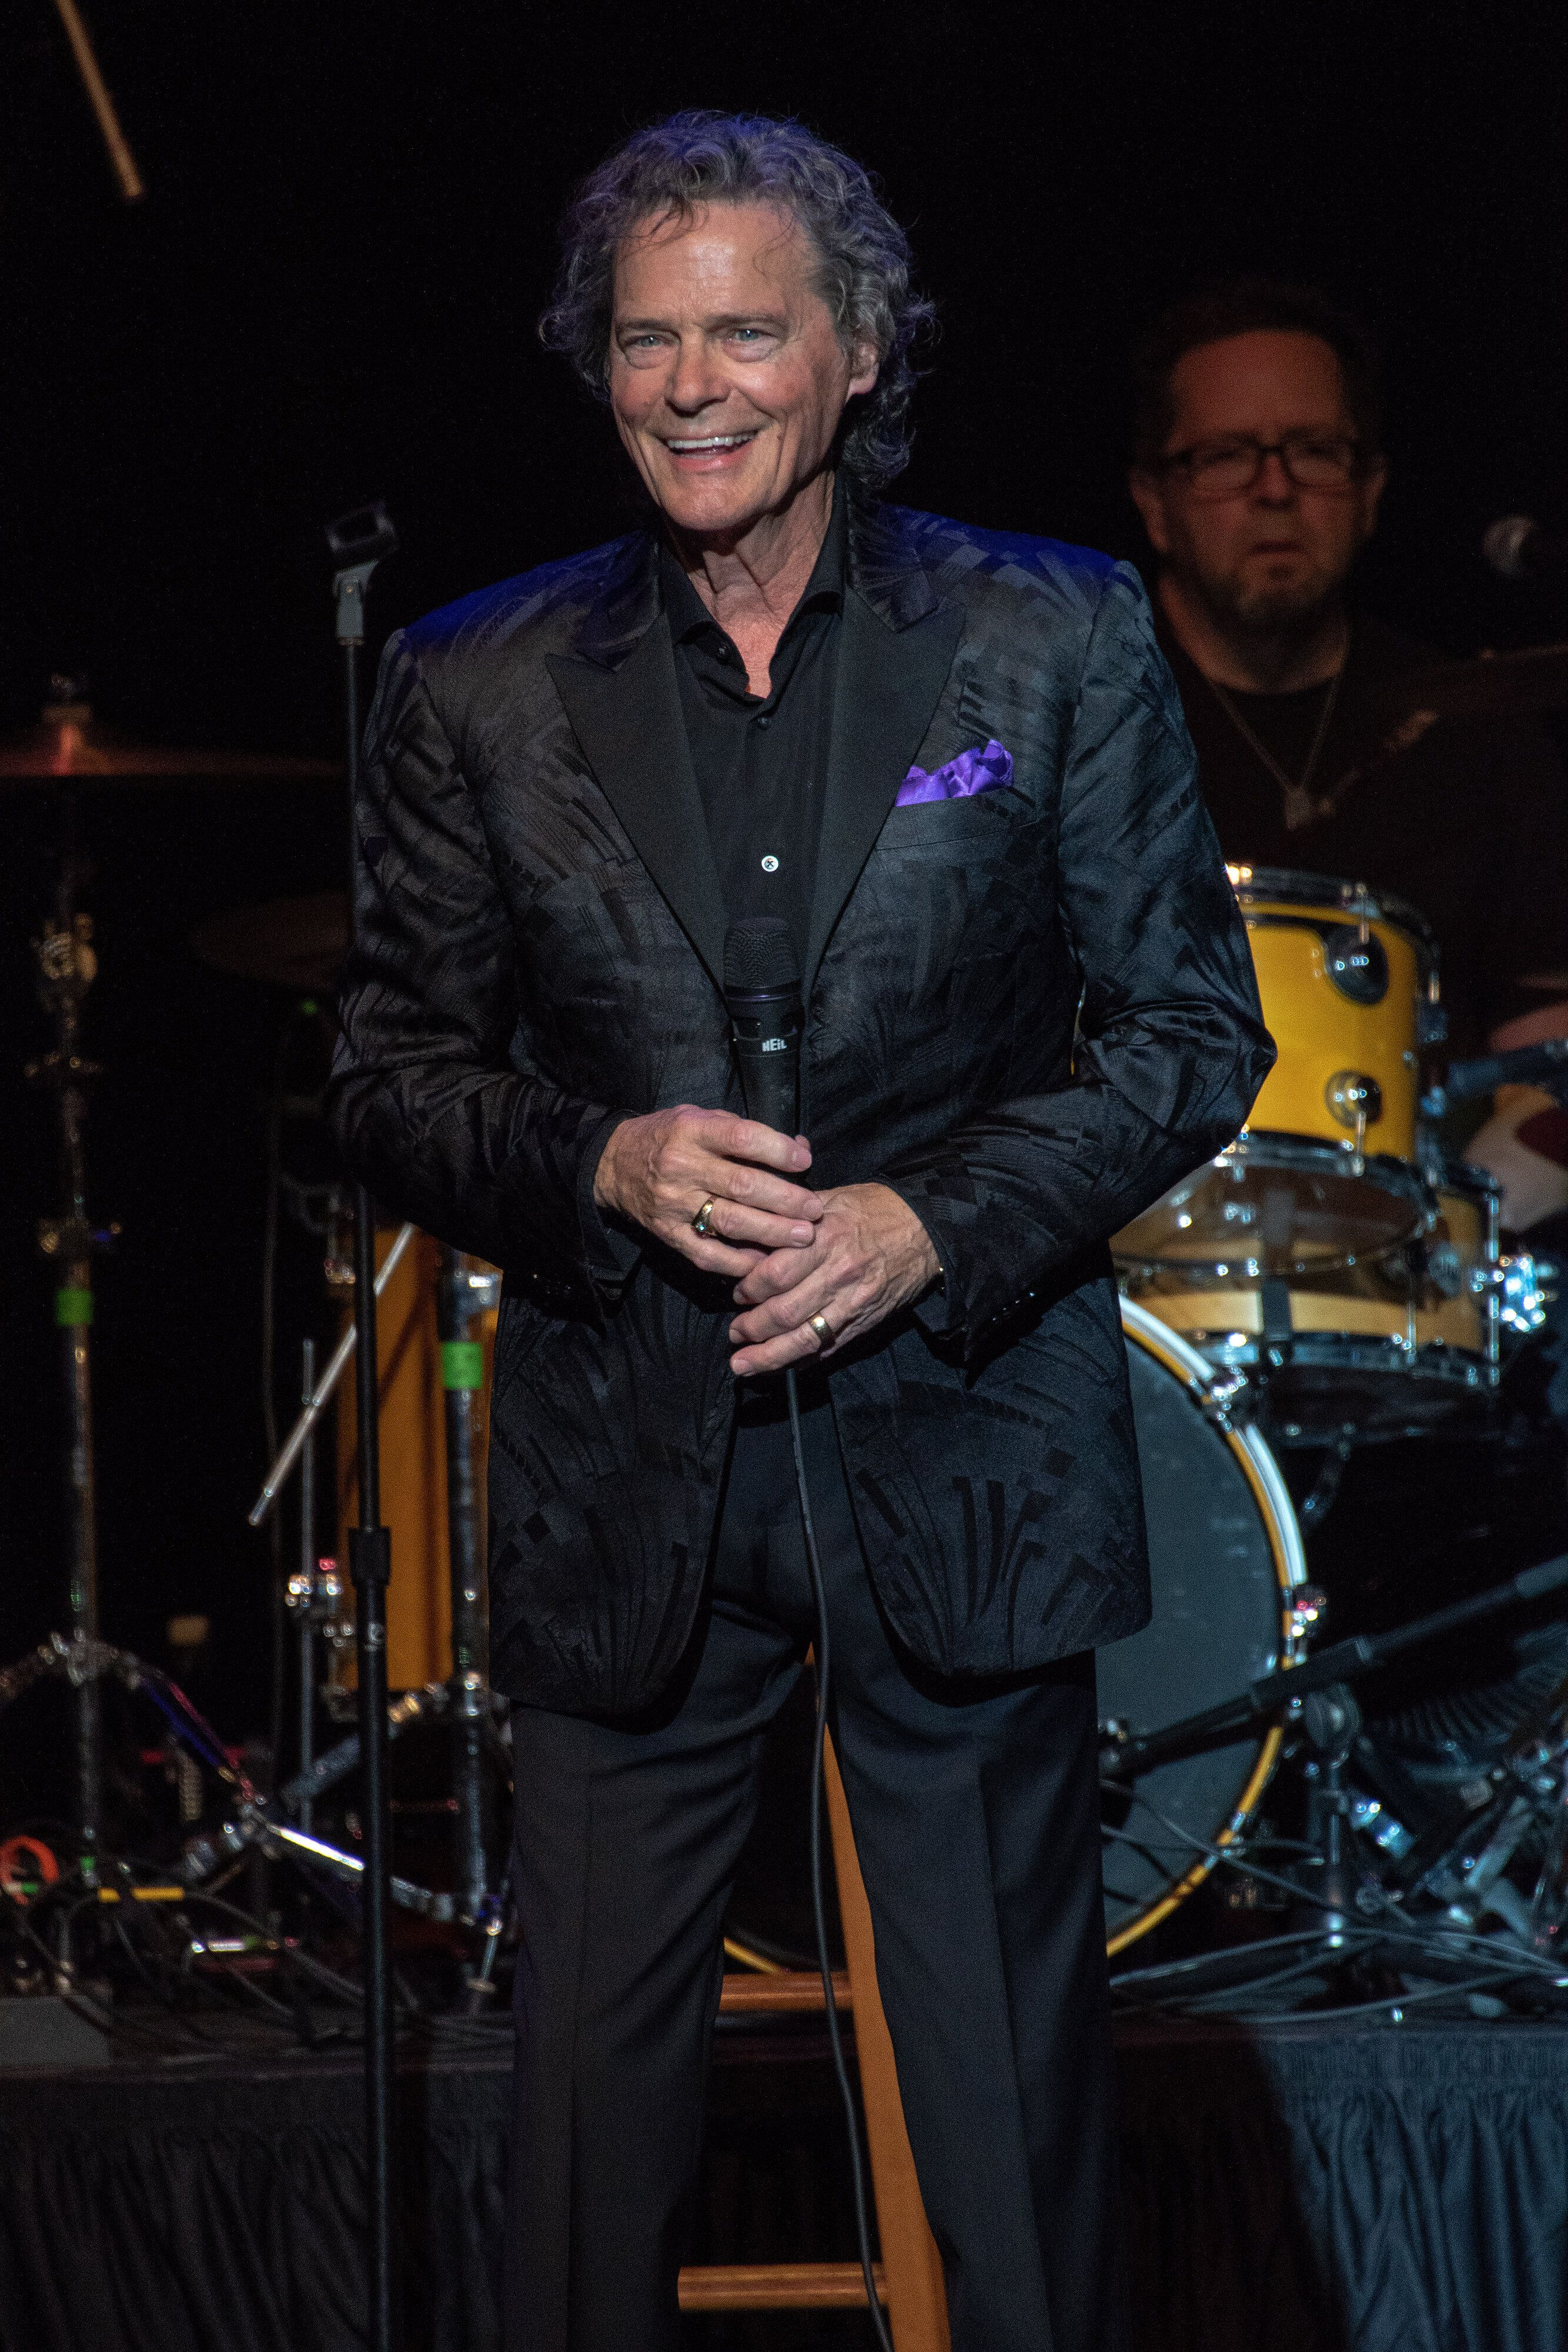 """B.J. Thomas, a five-time Grammy recipient, performs some of his legendary songs including """"Raindrops Keep Falling On My Head"""""""